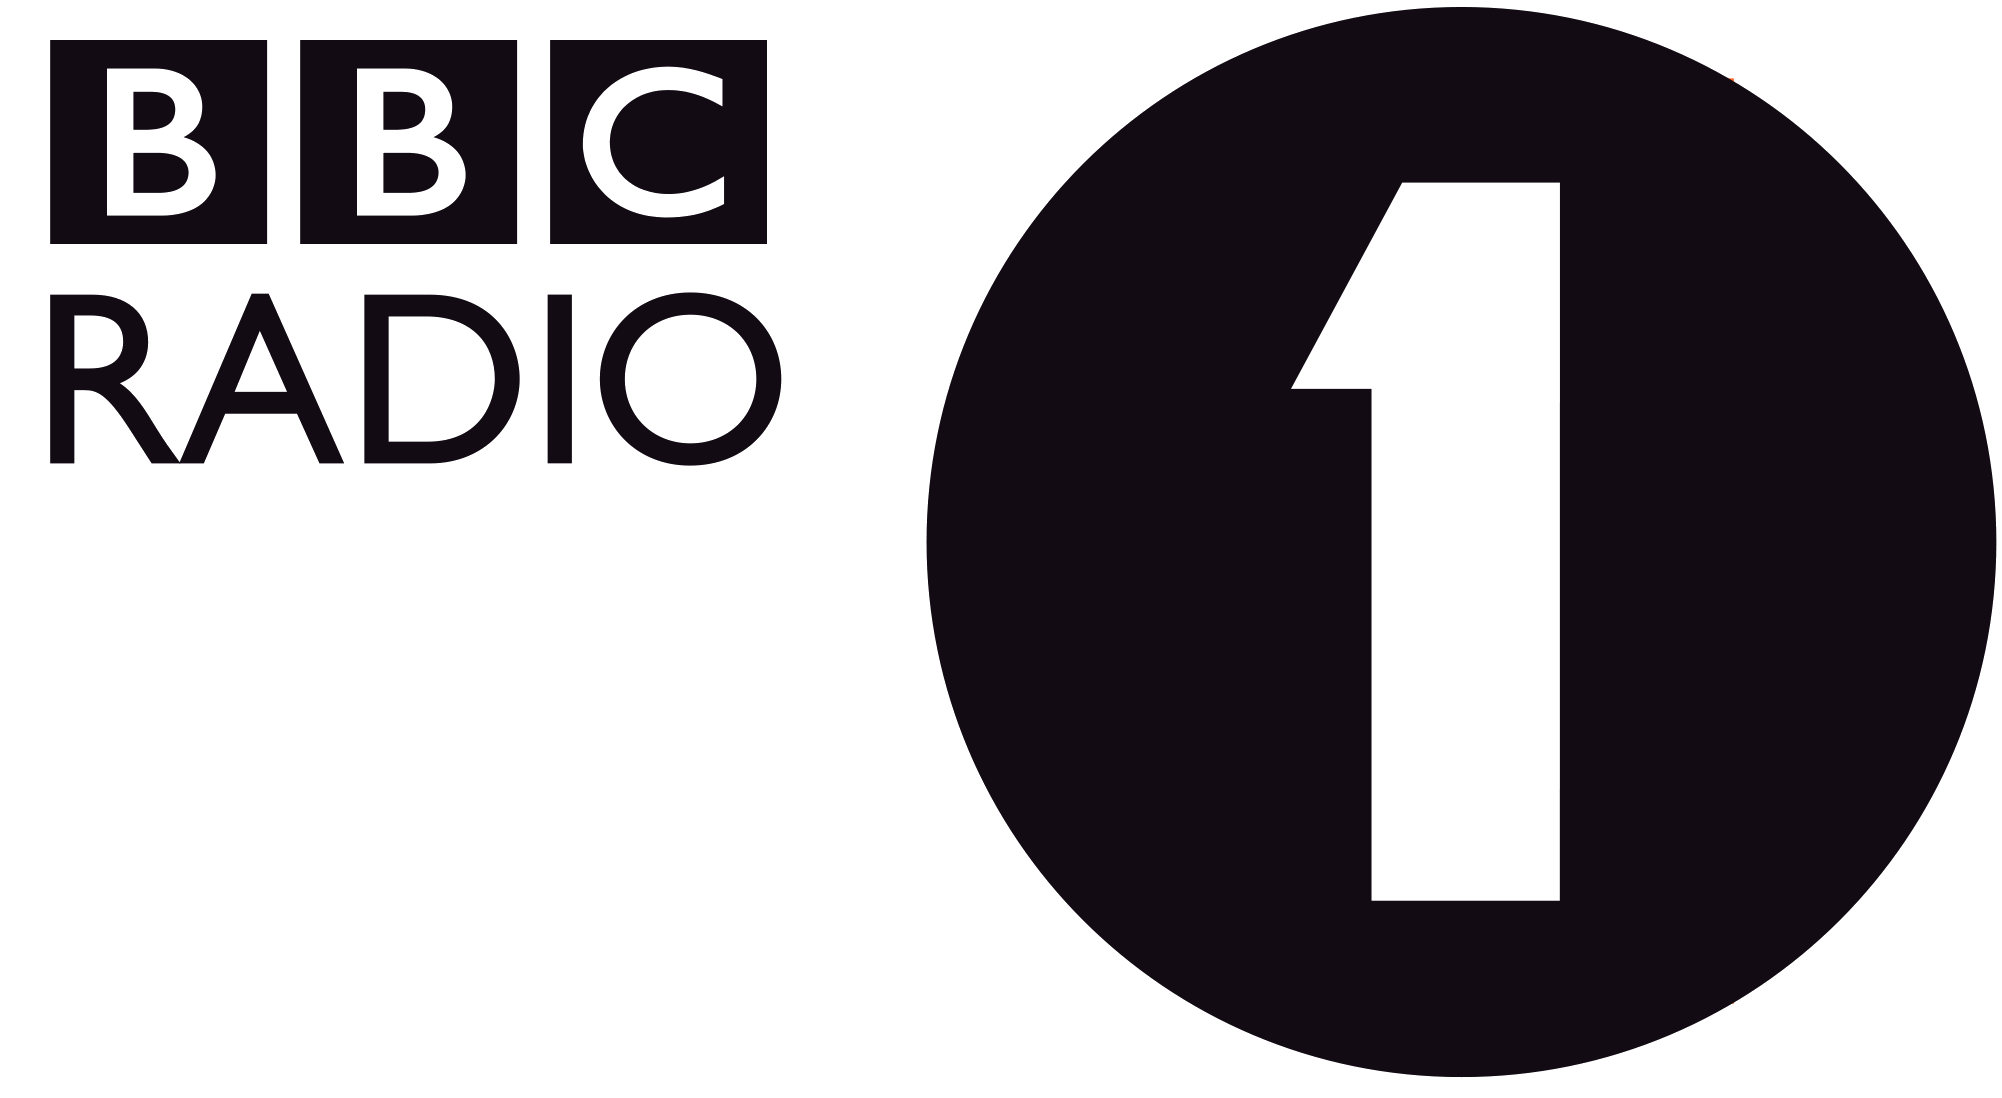 Monki - BBC Radio1 Incl Steve Lawler Lights On Mix - 08-May-2017